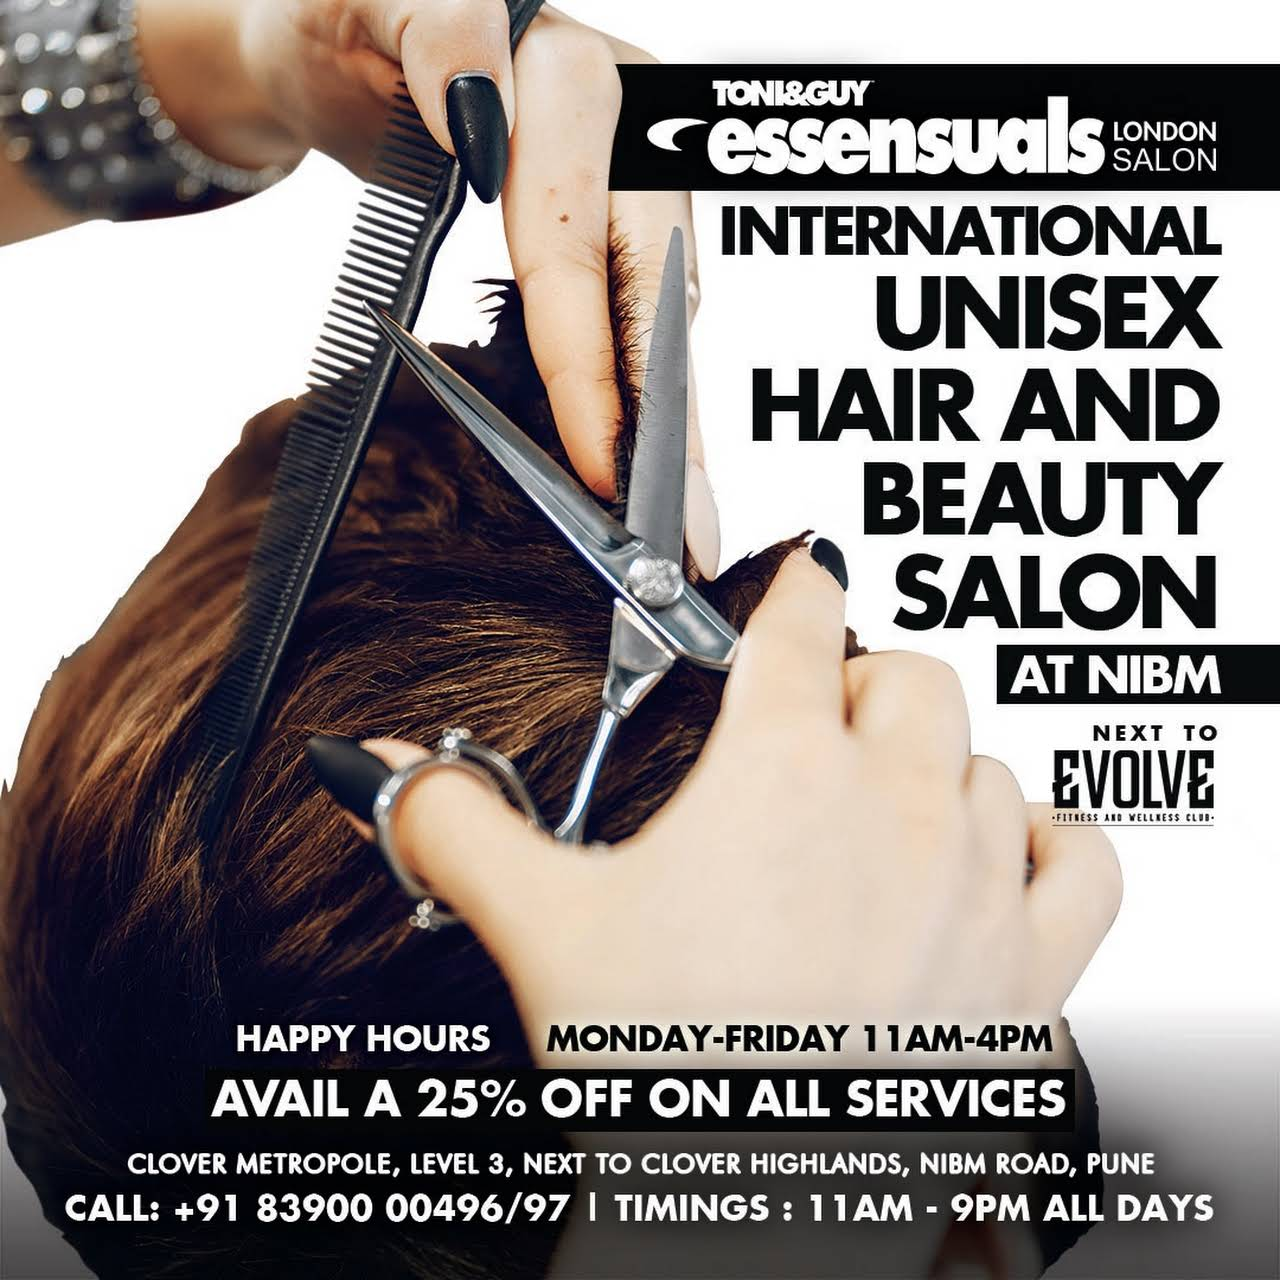 toni and guy services